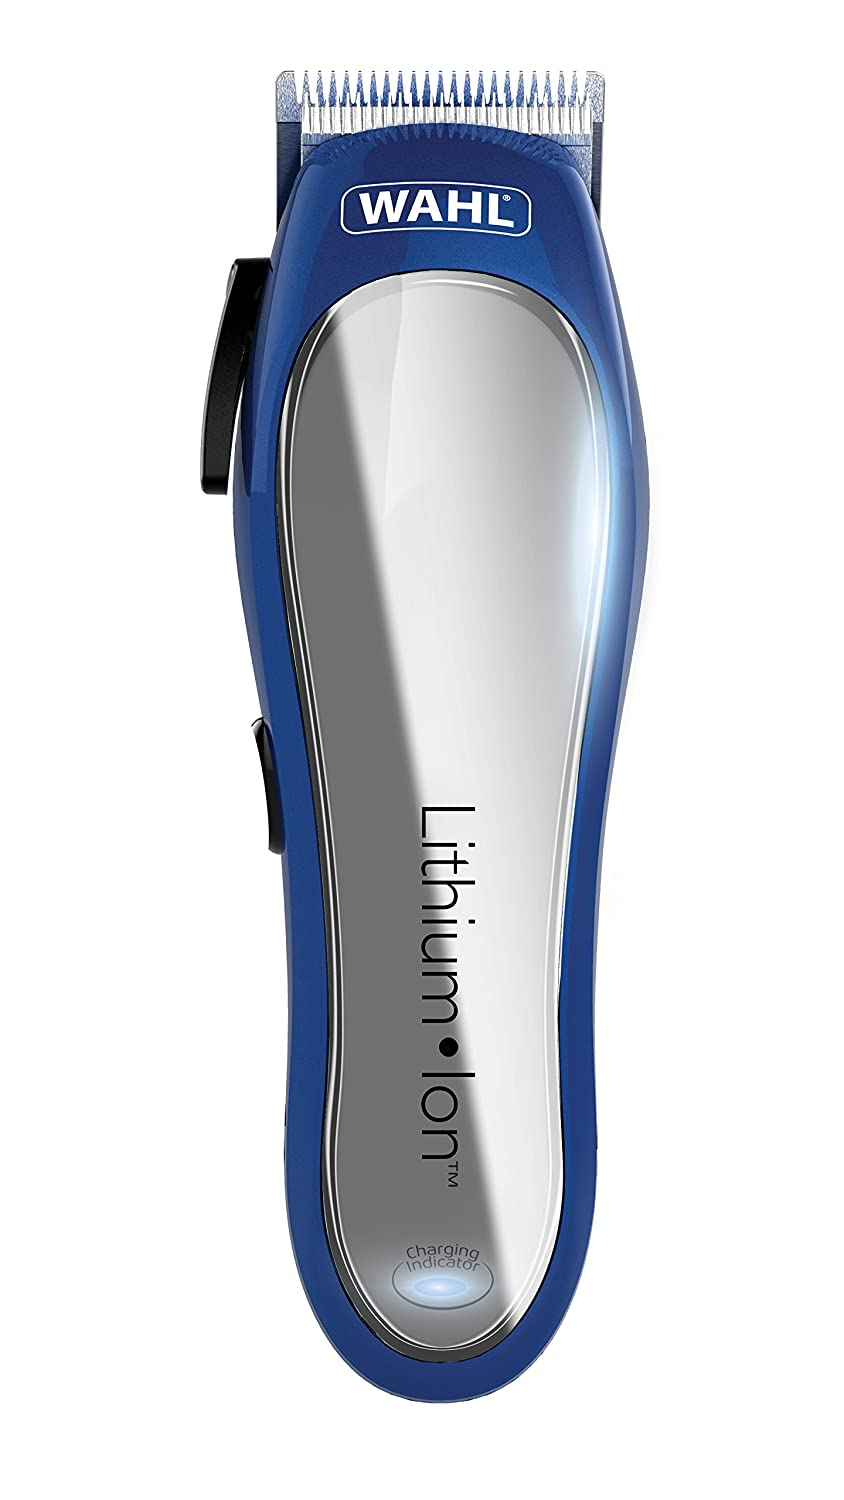 Wahl SPL Power Hair Clipper with Groomsman Pro 3-in-1 Grooming Station